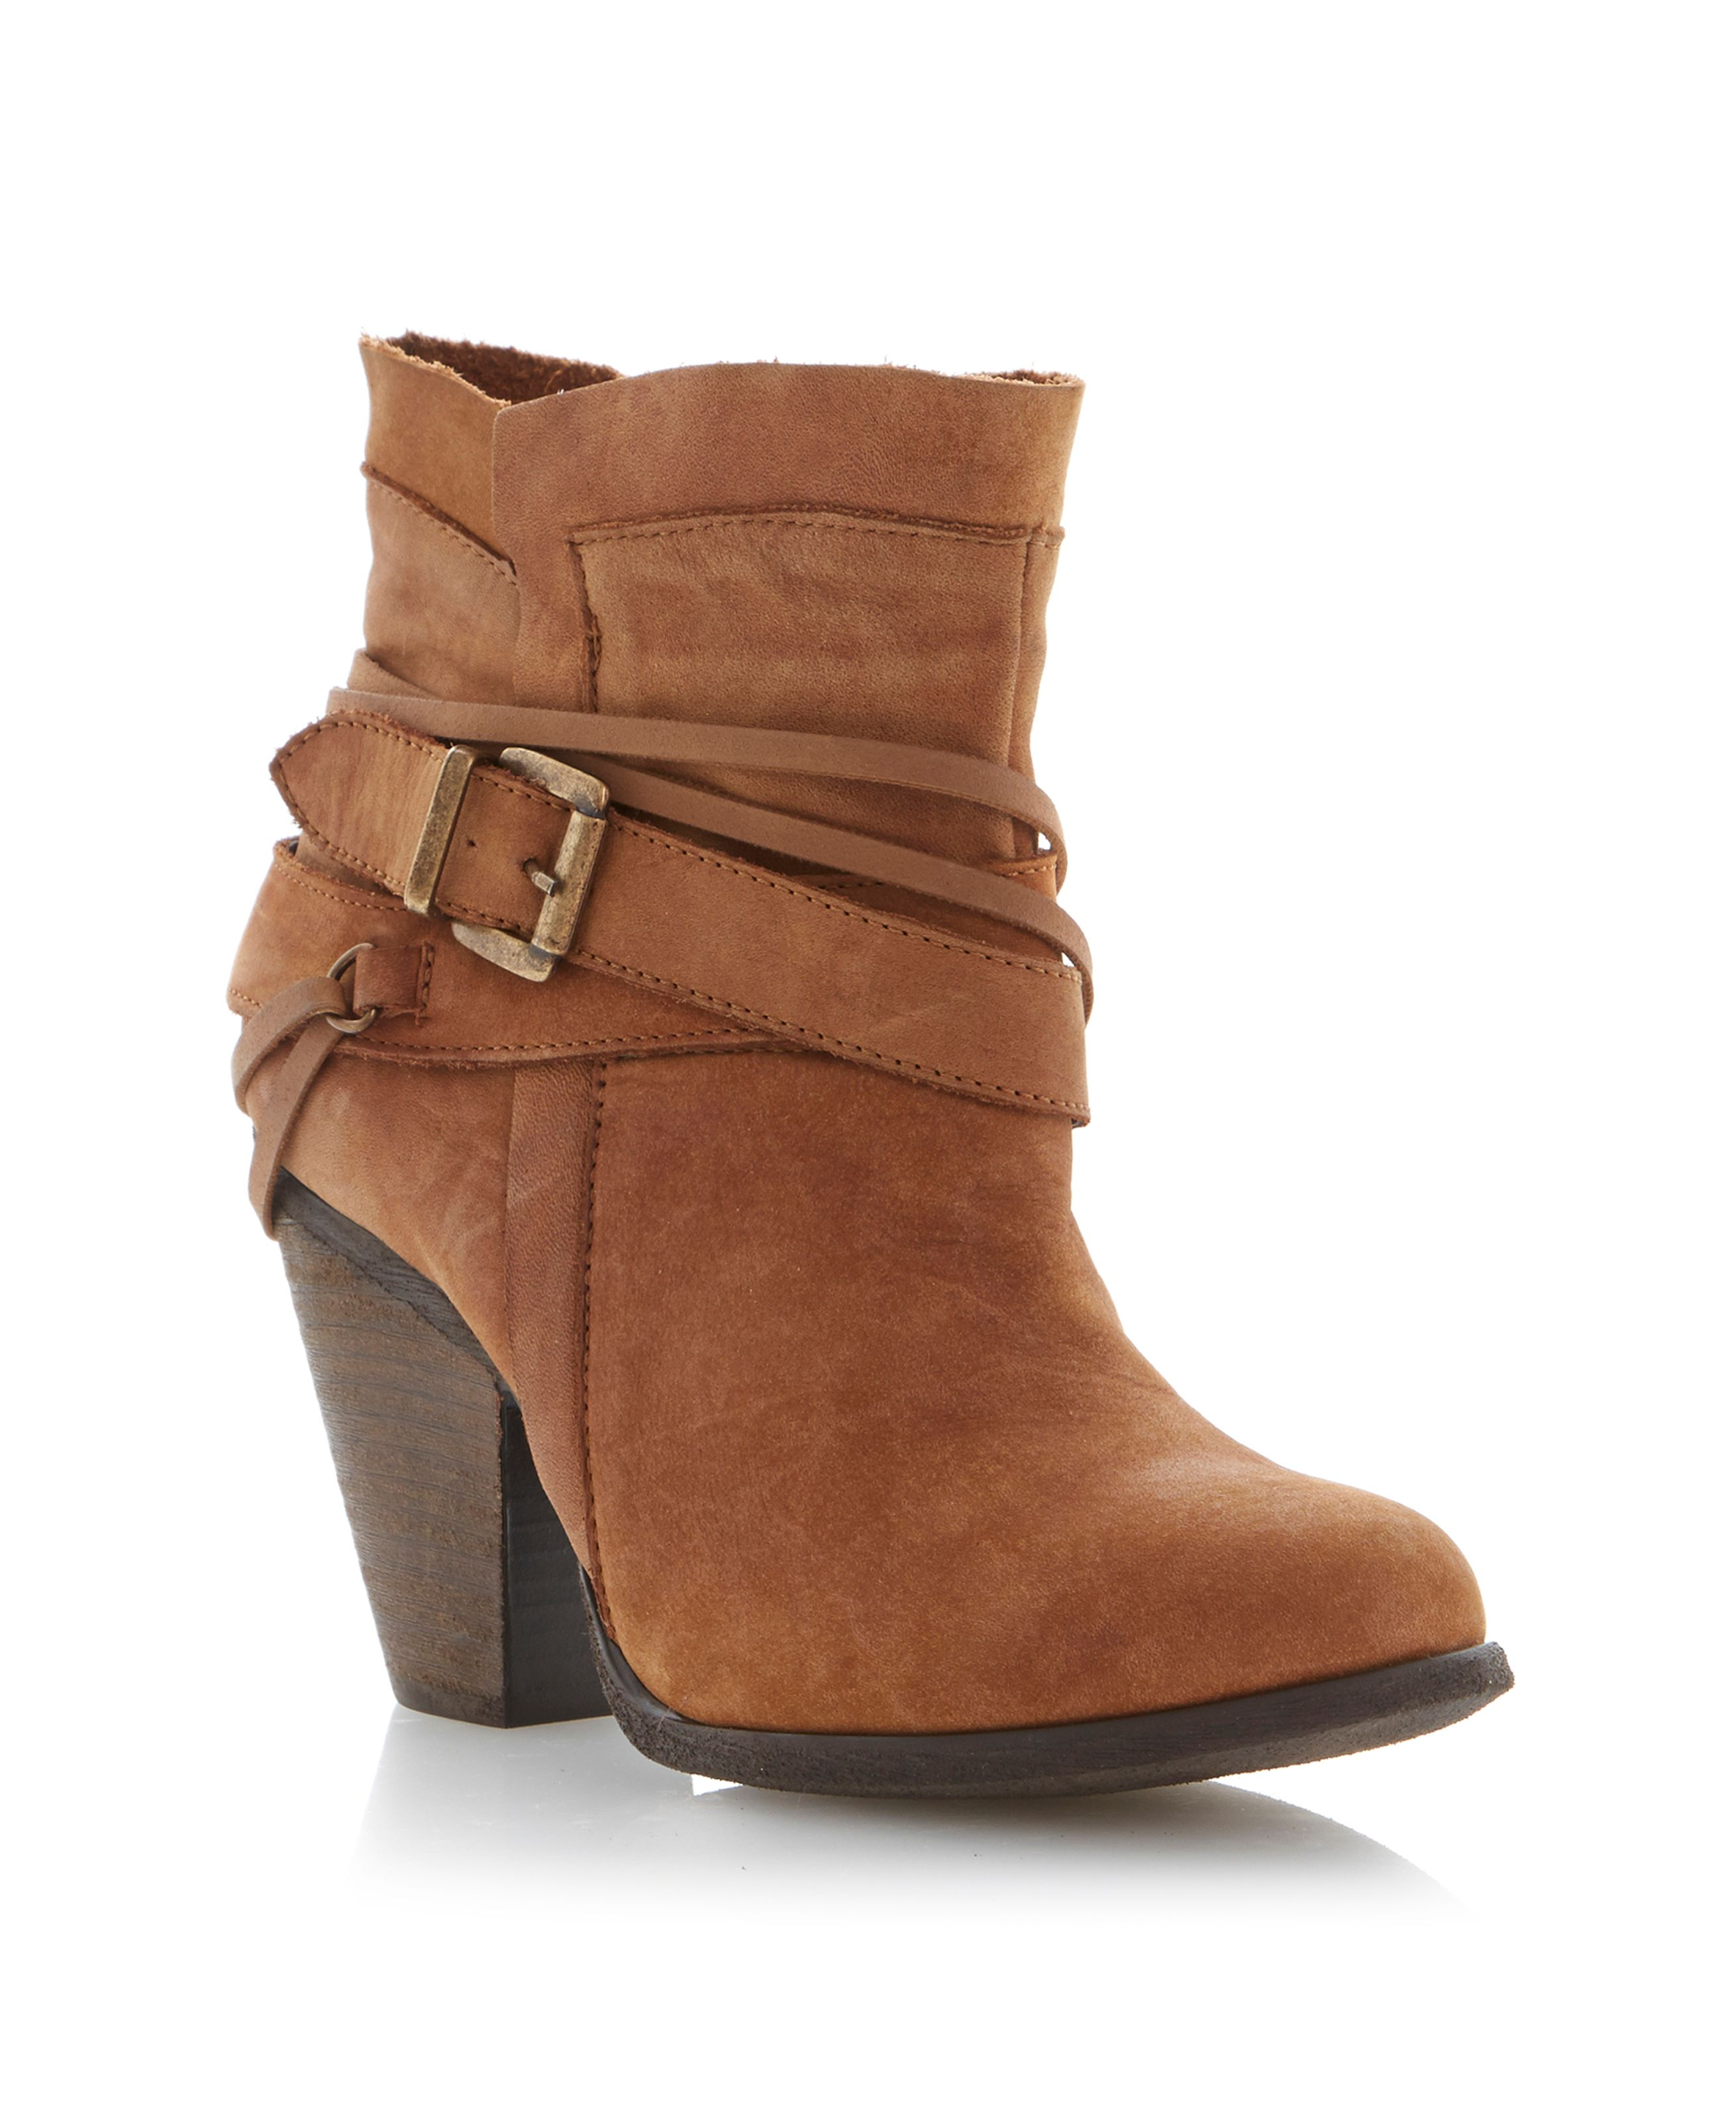 Raffa leather almond toe block heel boots